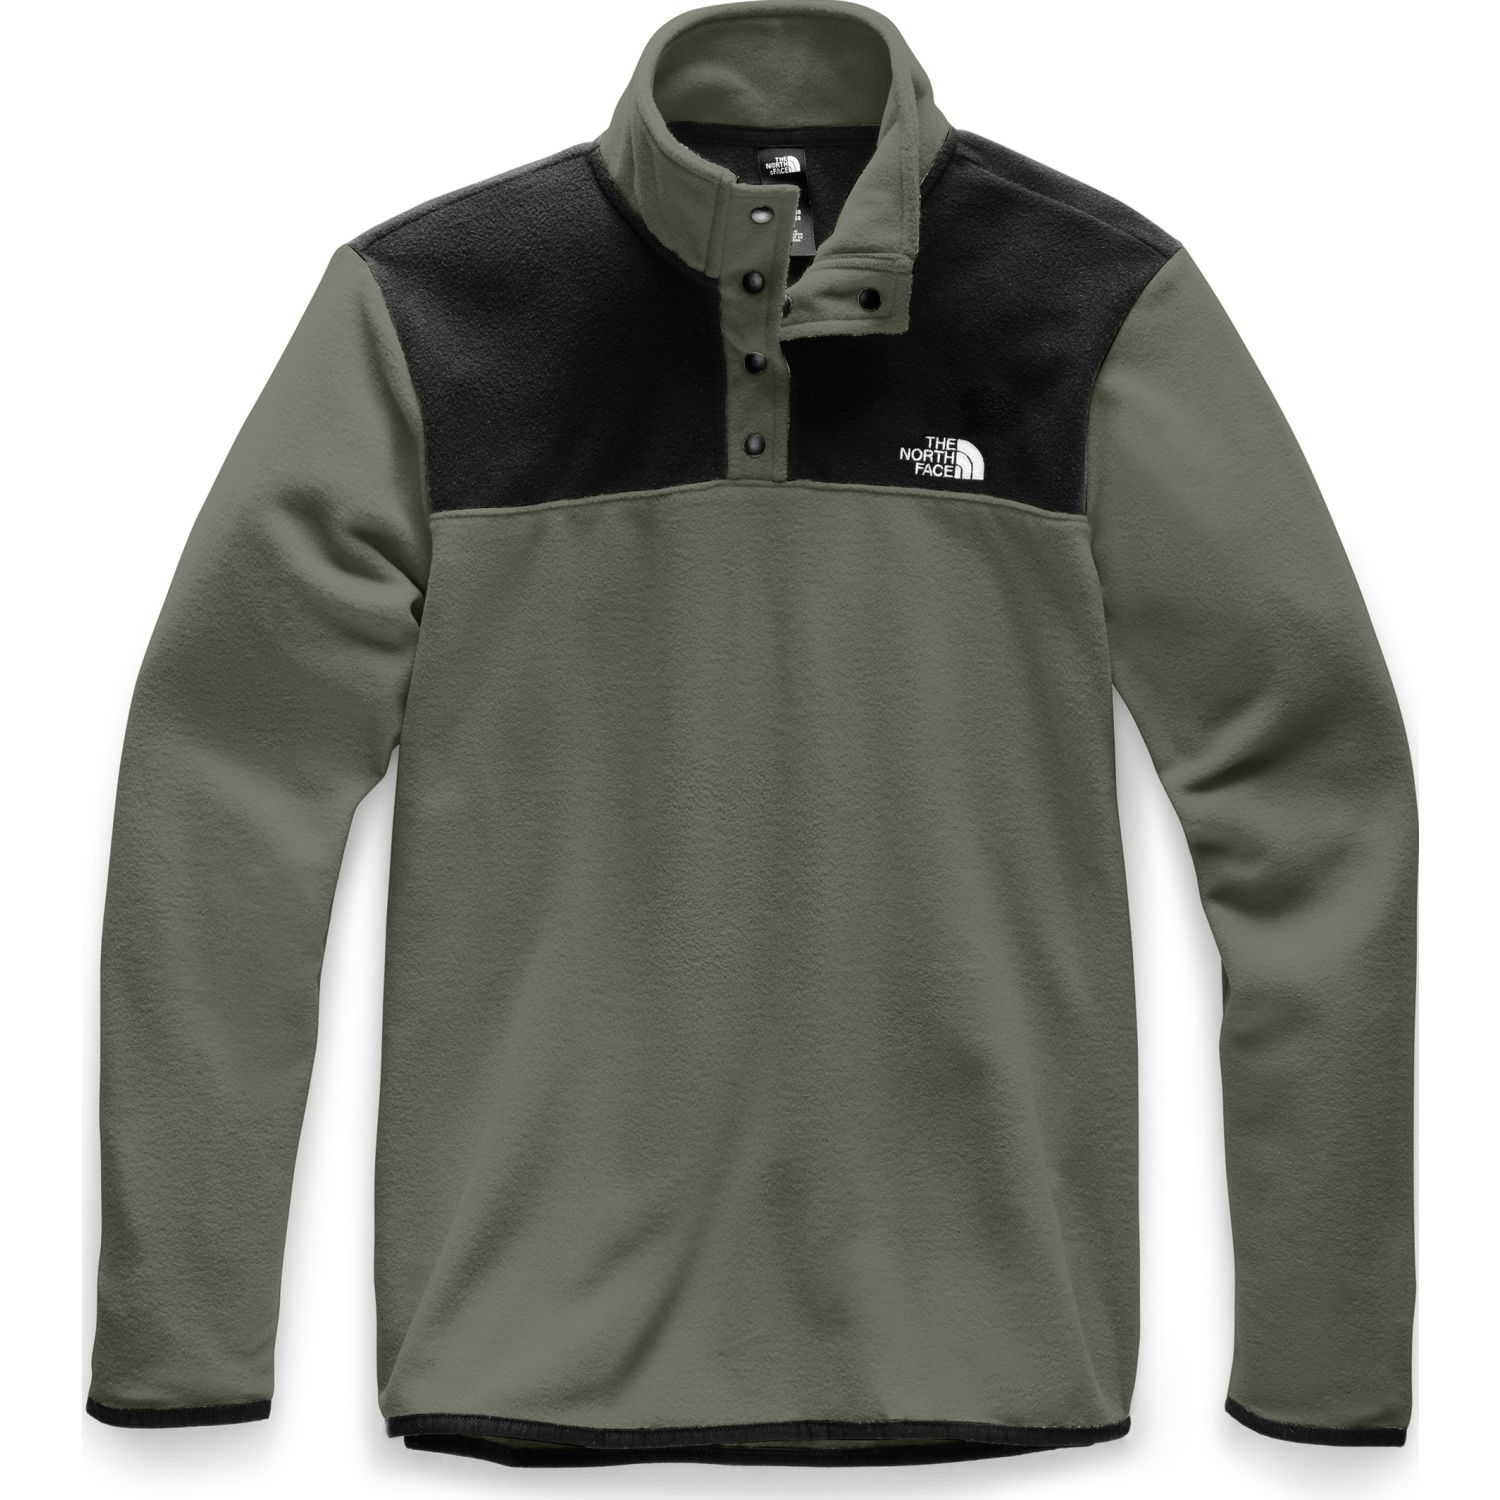 The North Face m tka glacier 1/4 zip Olivo / negro Pullovers